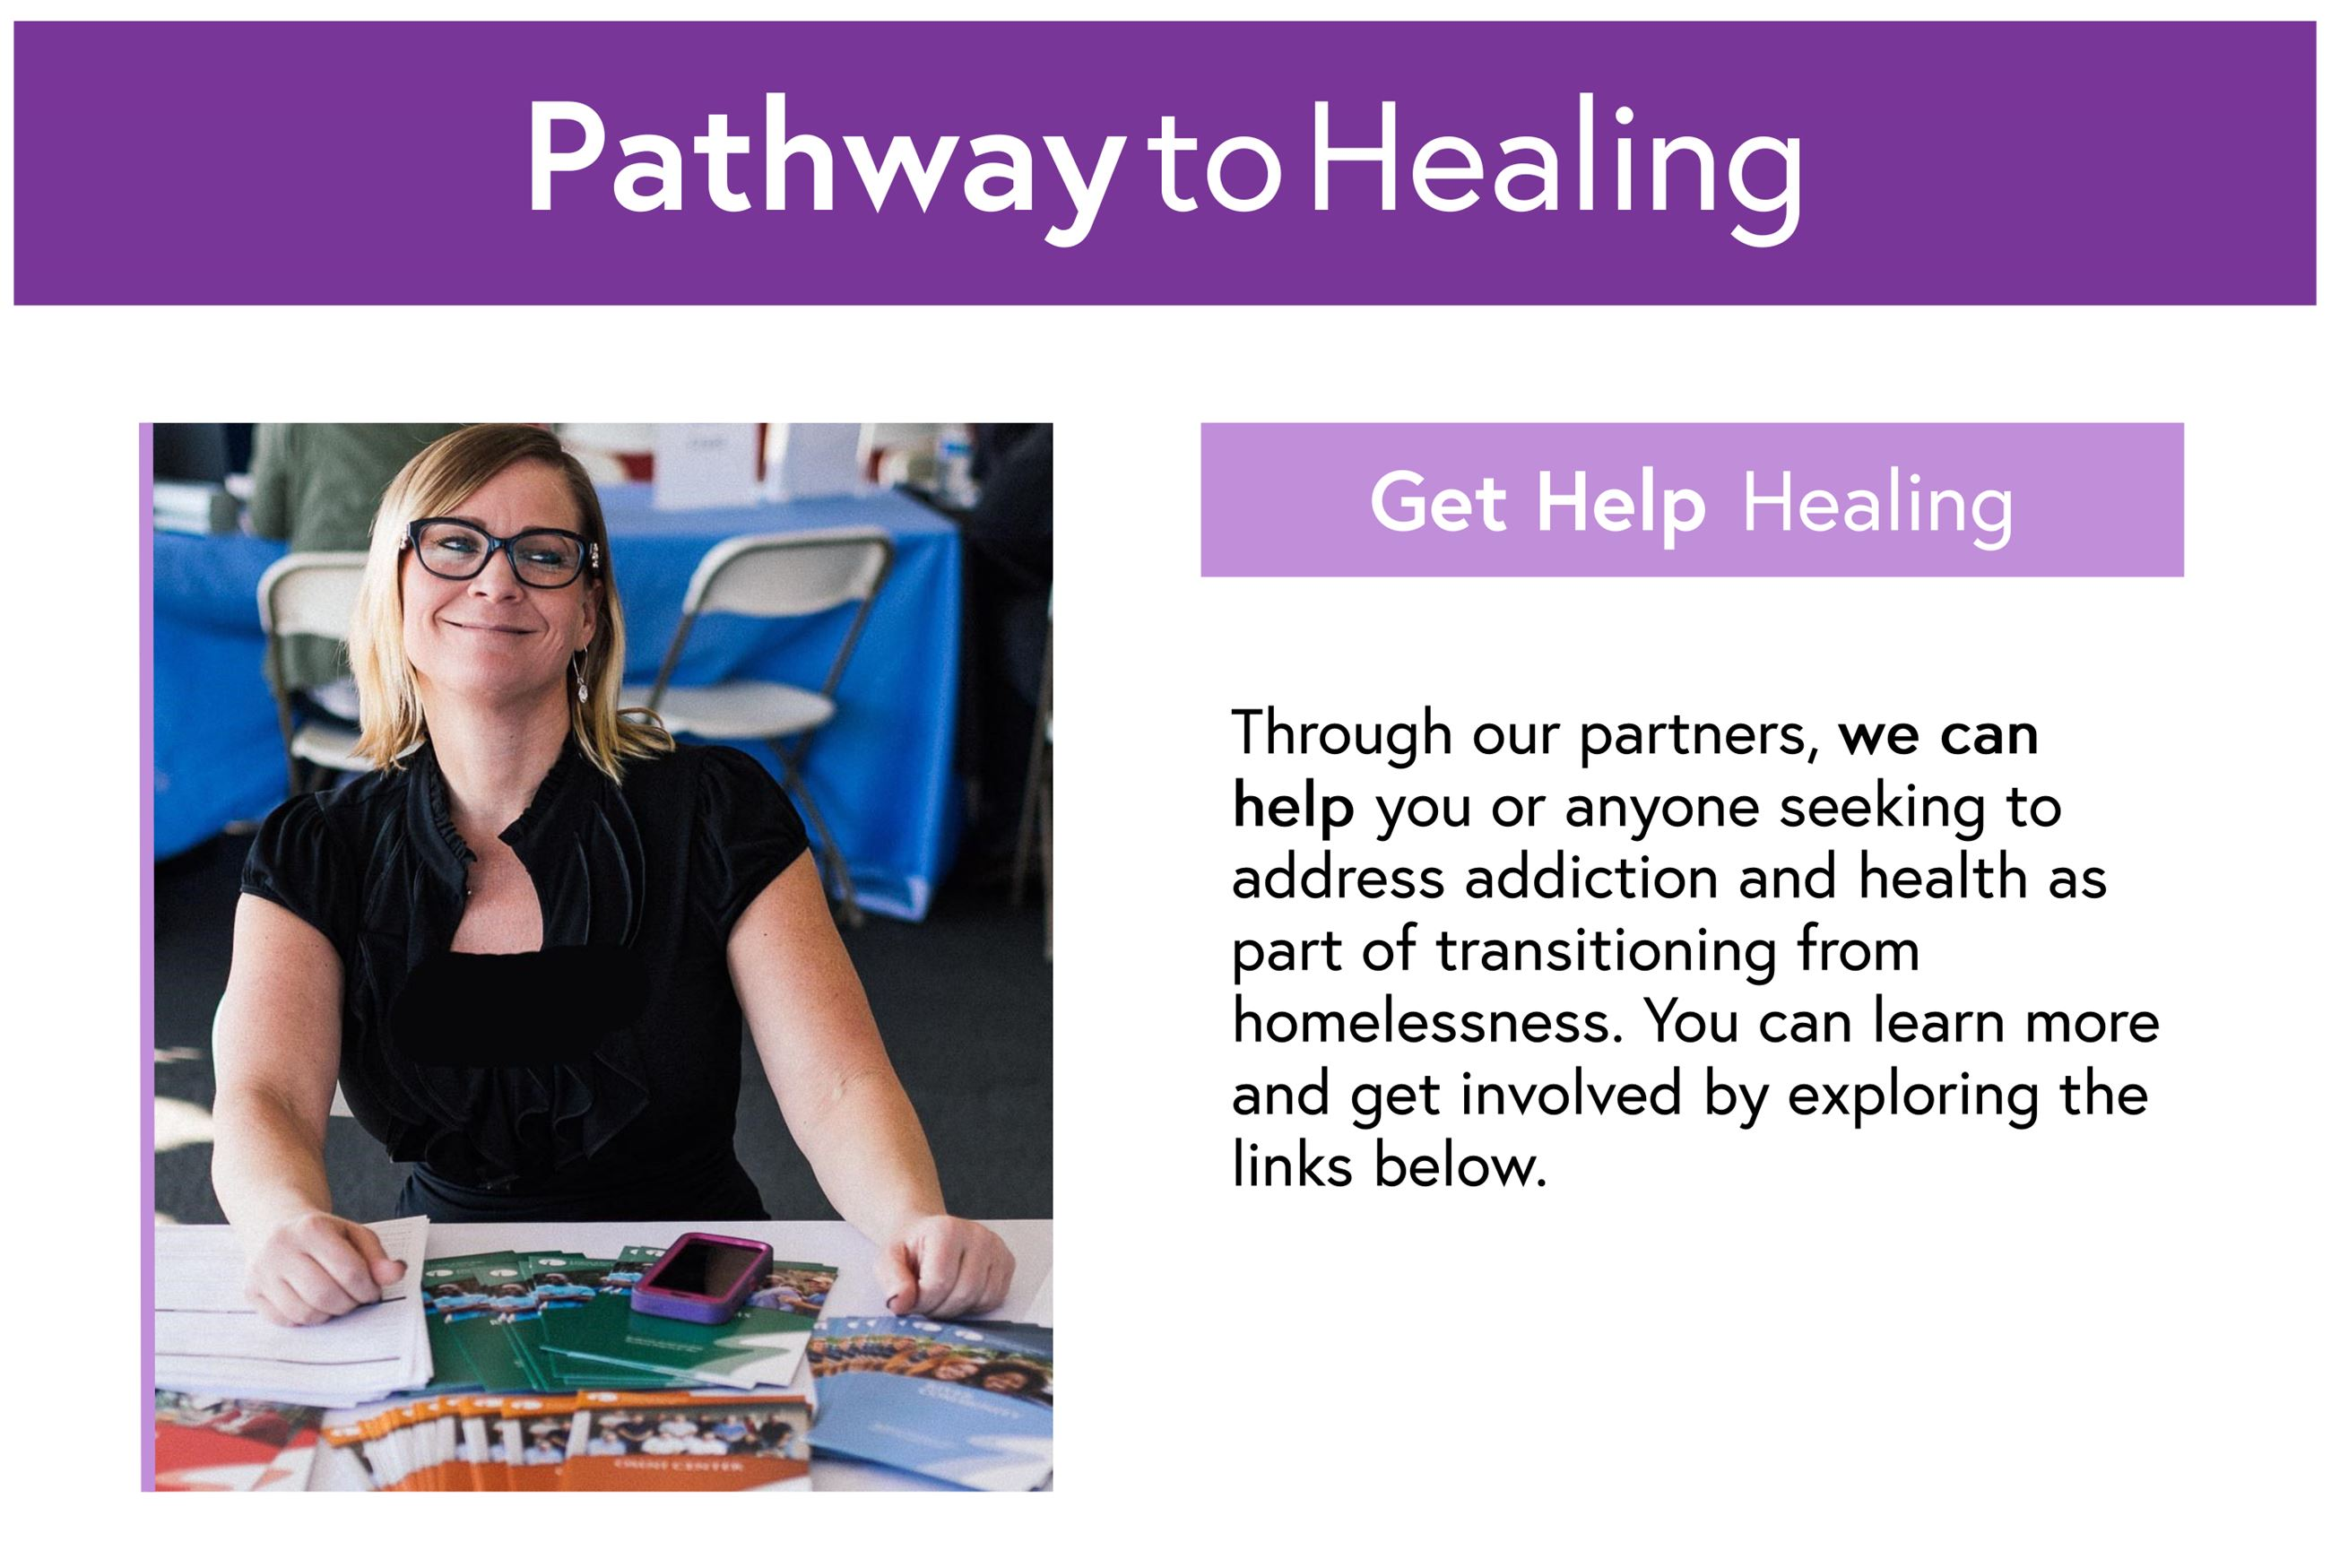 pathway to healing top